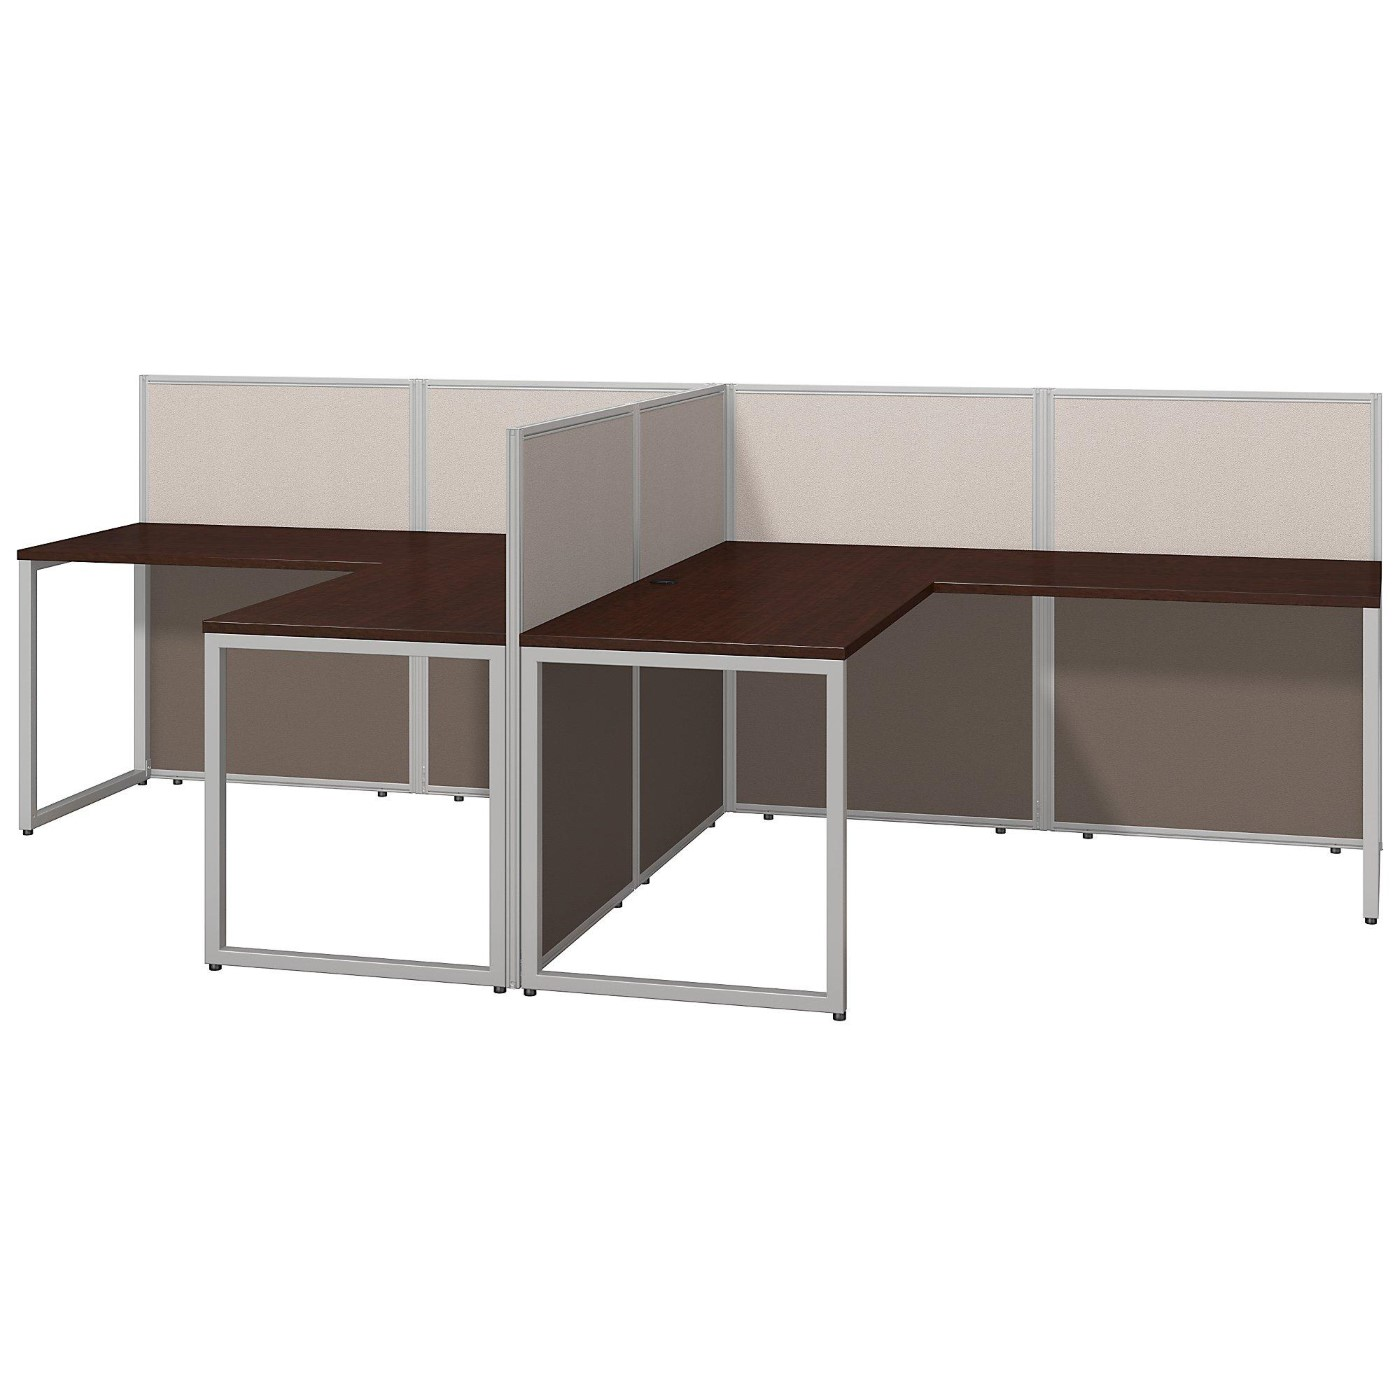 BUSH BUSINESS FURNITURE EASY OFFICE 60W TWO PERSON L SHAPED DESK OPEN OFFICE. FREE SHIPPING.  SALE DEDUCT 10% MORE ENTER '10percent' IN COUPON CODE BOX WHILE CHECKING OUT. ENDS 5-31-20.